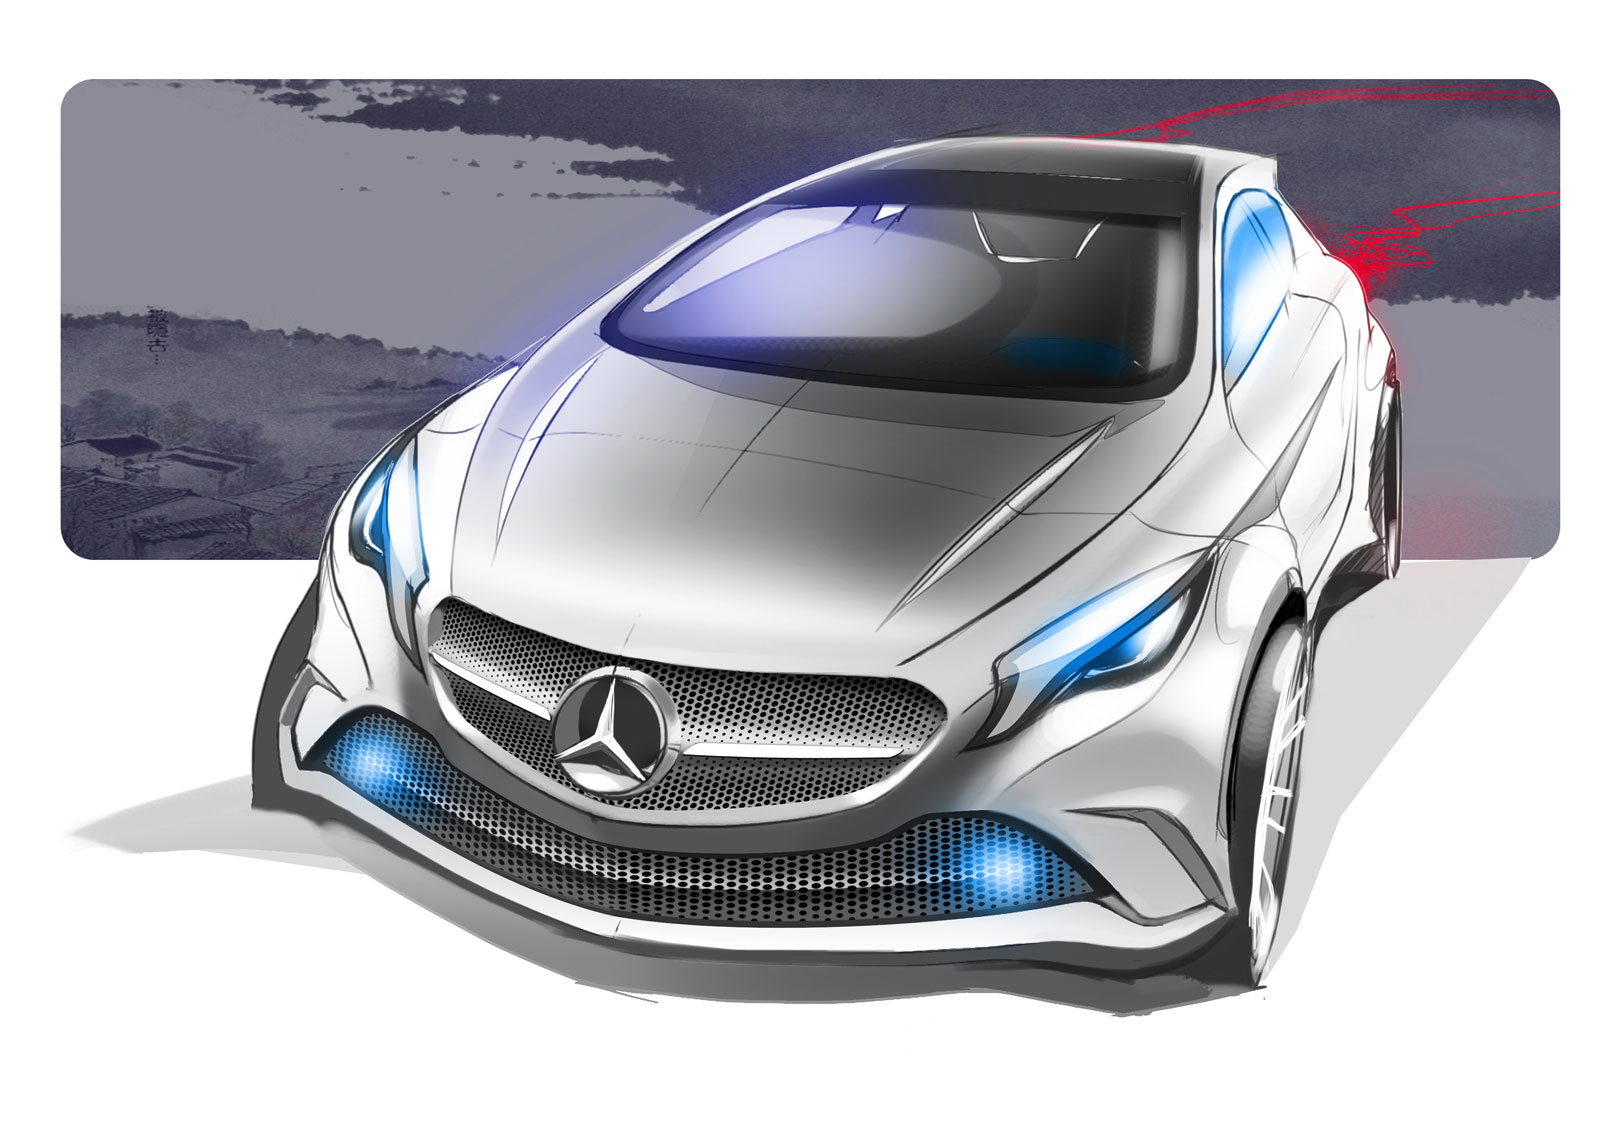 05_Mercedes-Benz-Concept-A-Class-Design-Sketch-05